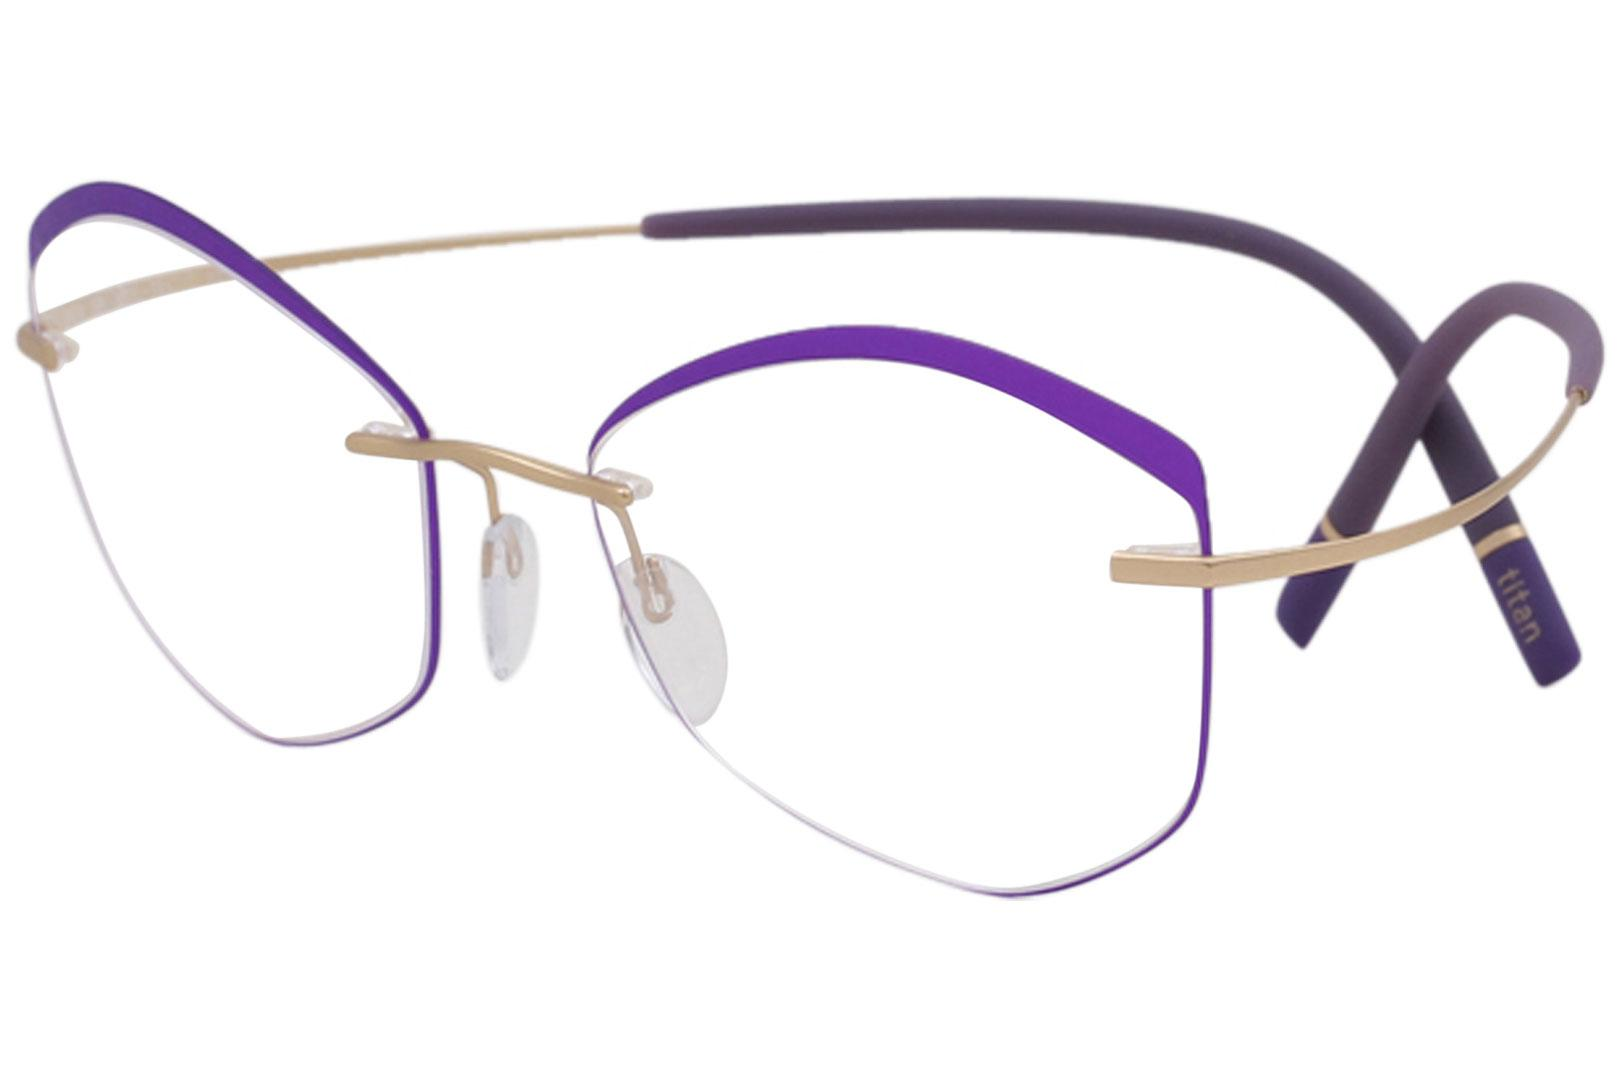 c9bd19f8c9a Silhouette Eyeglasses Titan Minimal Art The Icon Accent Rings 5518 Optical  Frame by Silhouette. Touch to zoom